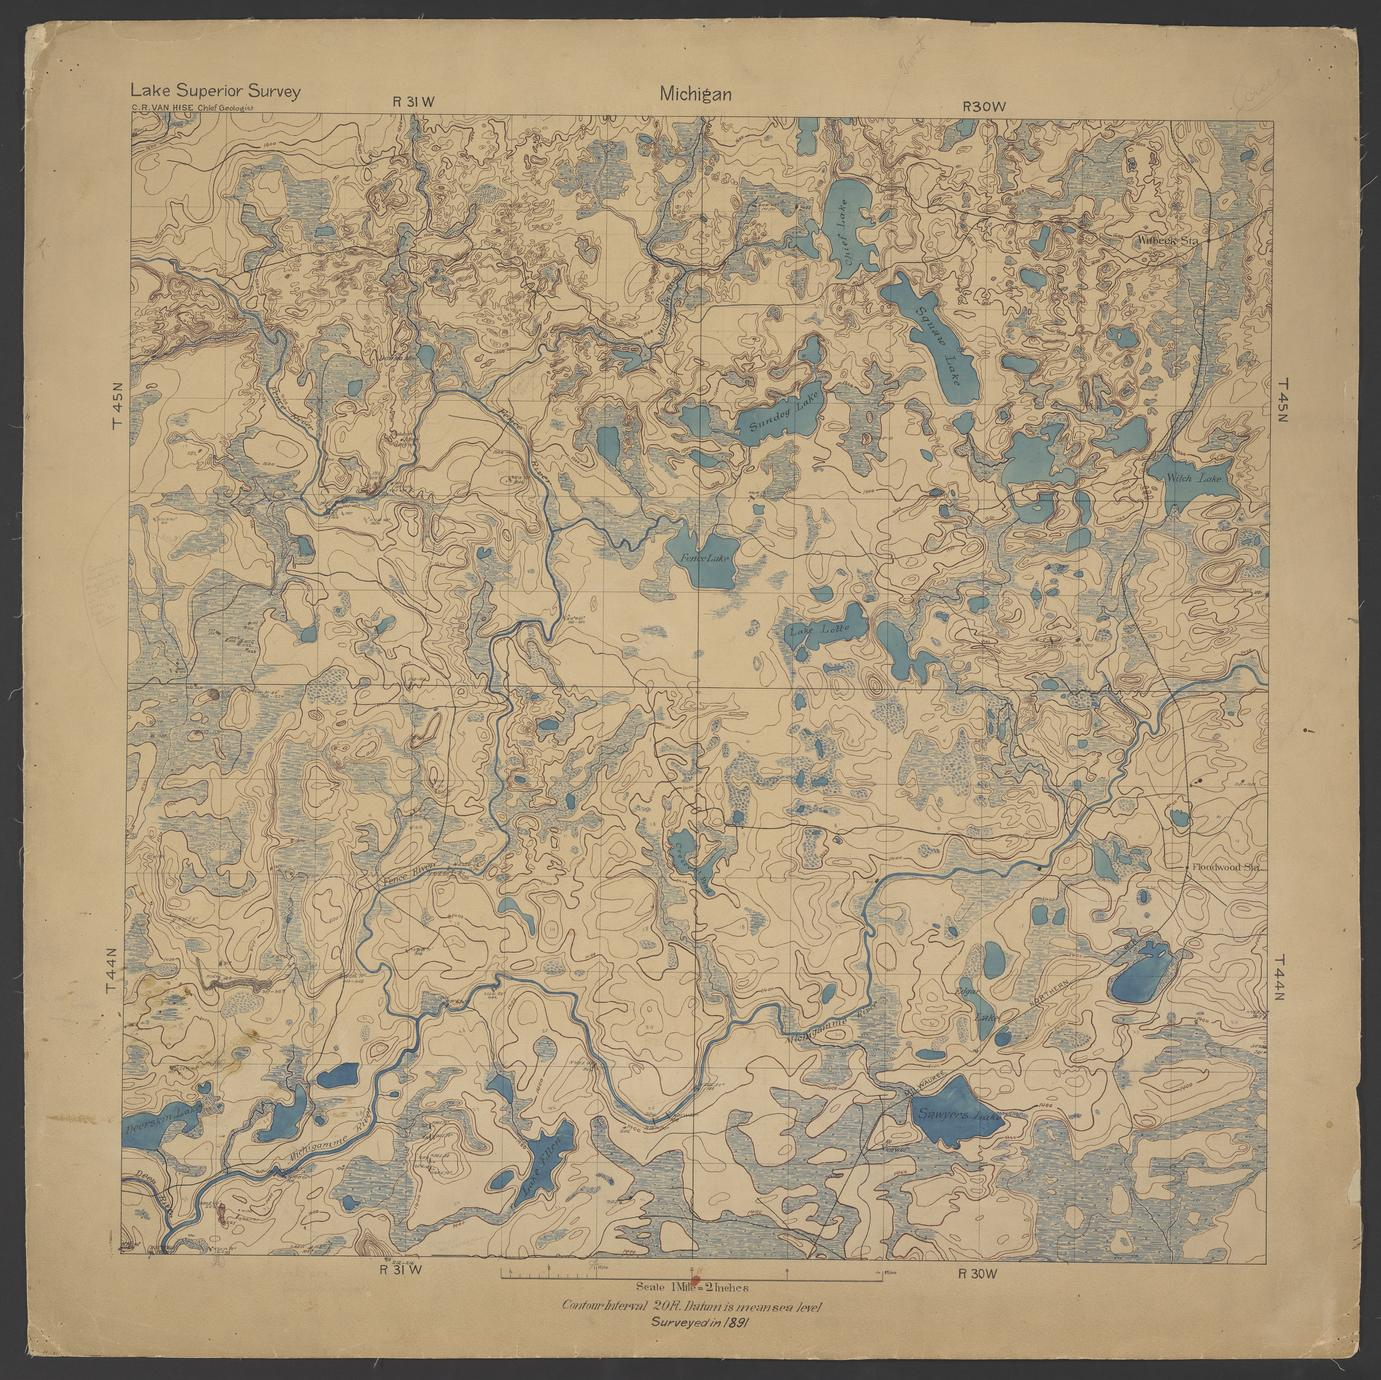 Geological map of area north of Channing, Dickinson, Iron, and Marquette Counties, Michigan